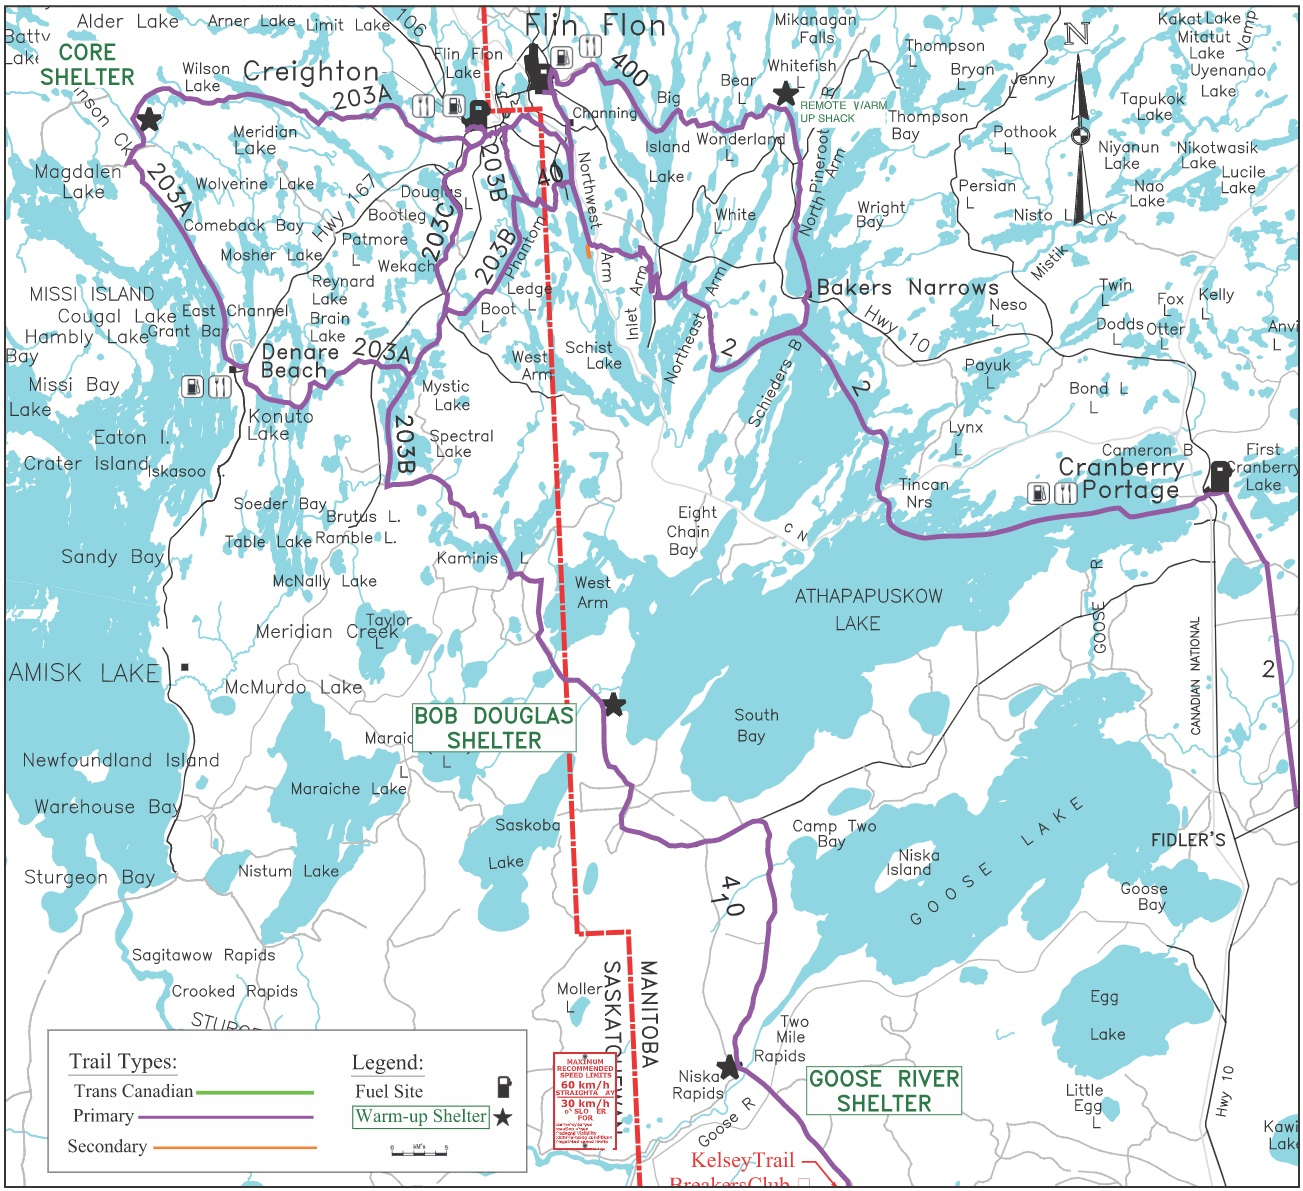 Greater Flin Flon area trail map.